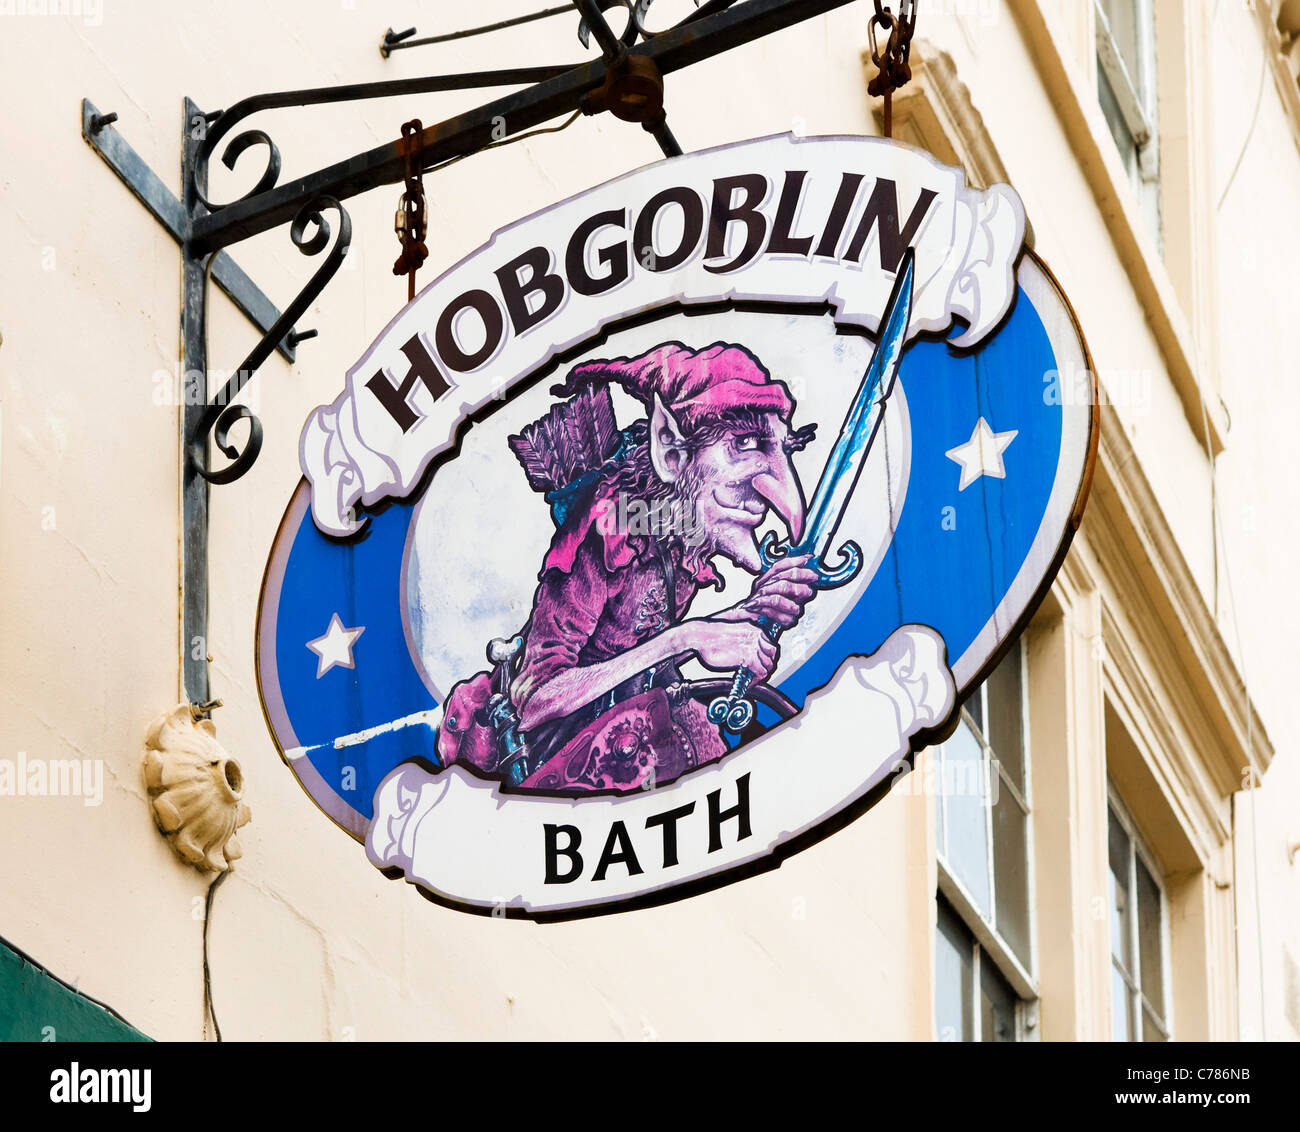 Signe pour le Hobgoblin pub dans le centre-ville, Bath, Somerset, England, UK Photo Stock